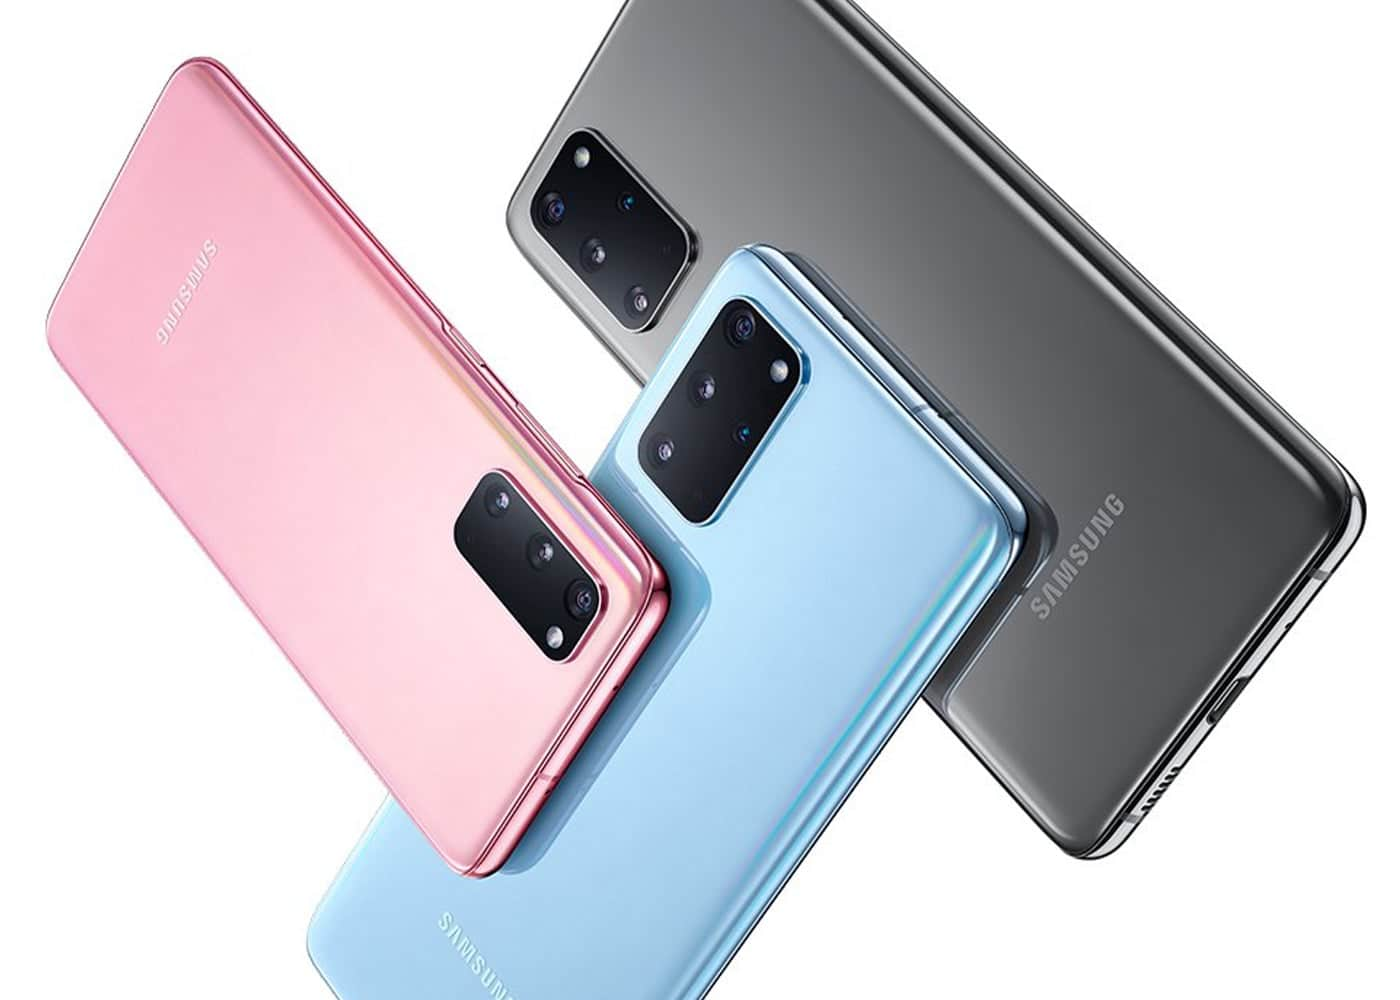 The Galaxy S20 series may sell less than the S10, according to analysts - Gizchina.com